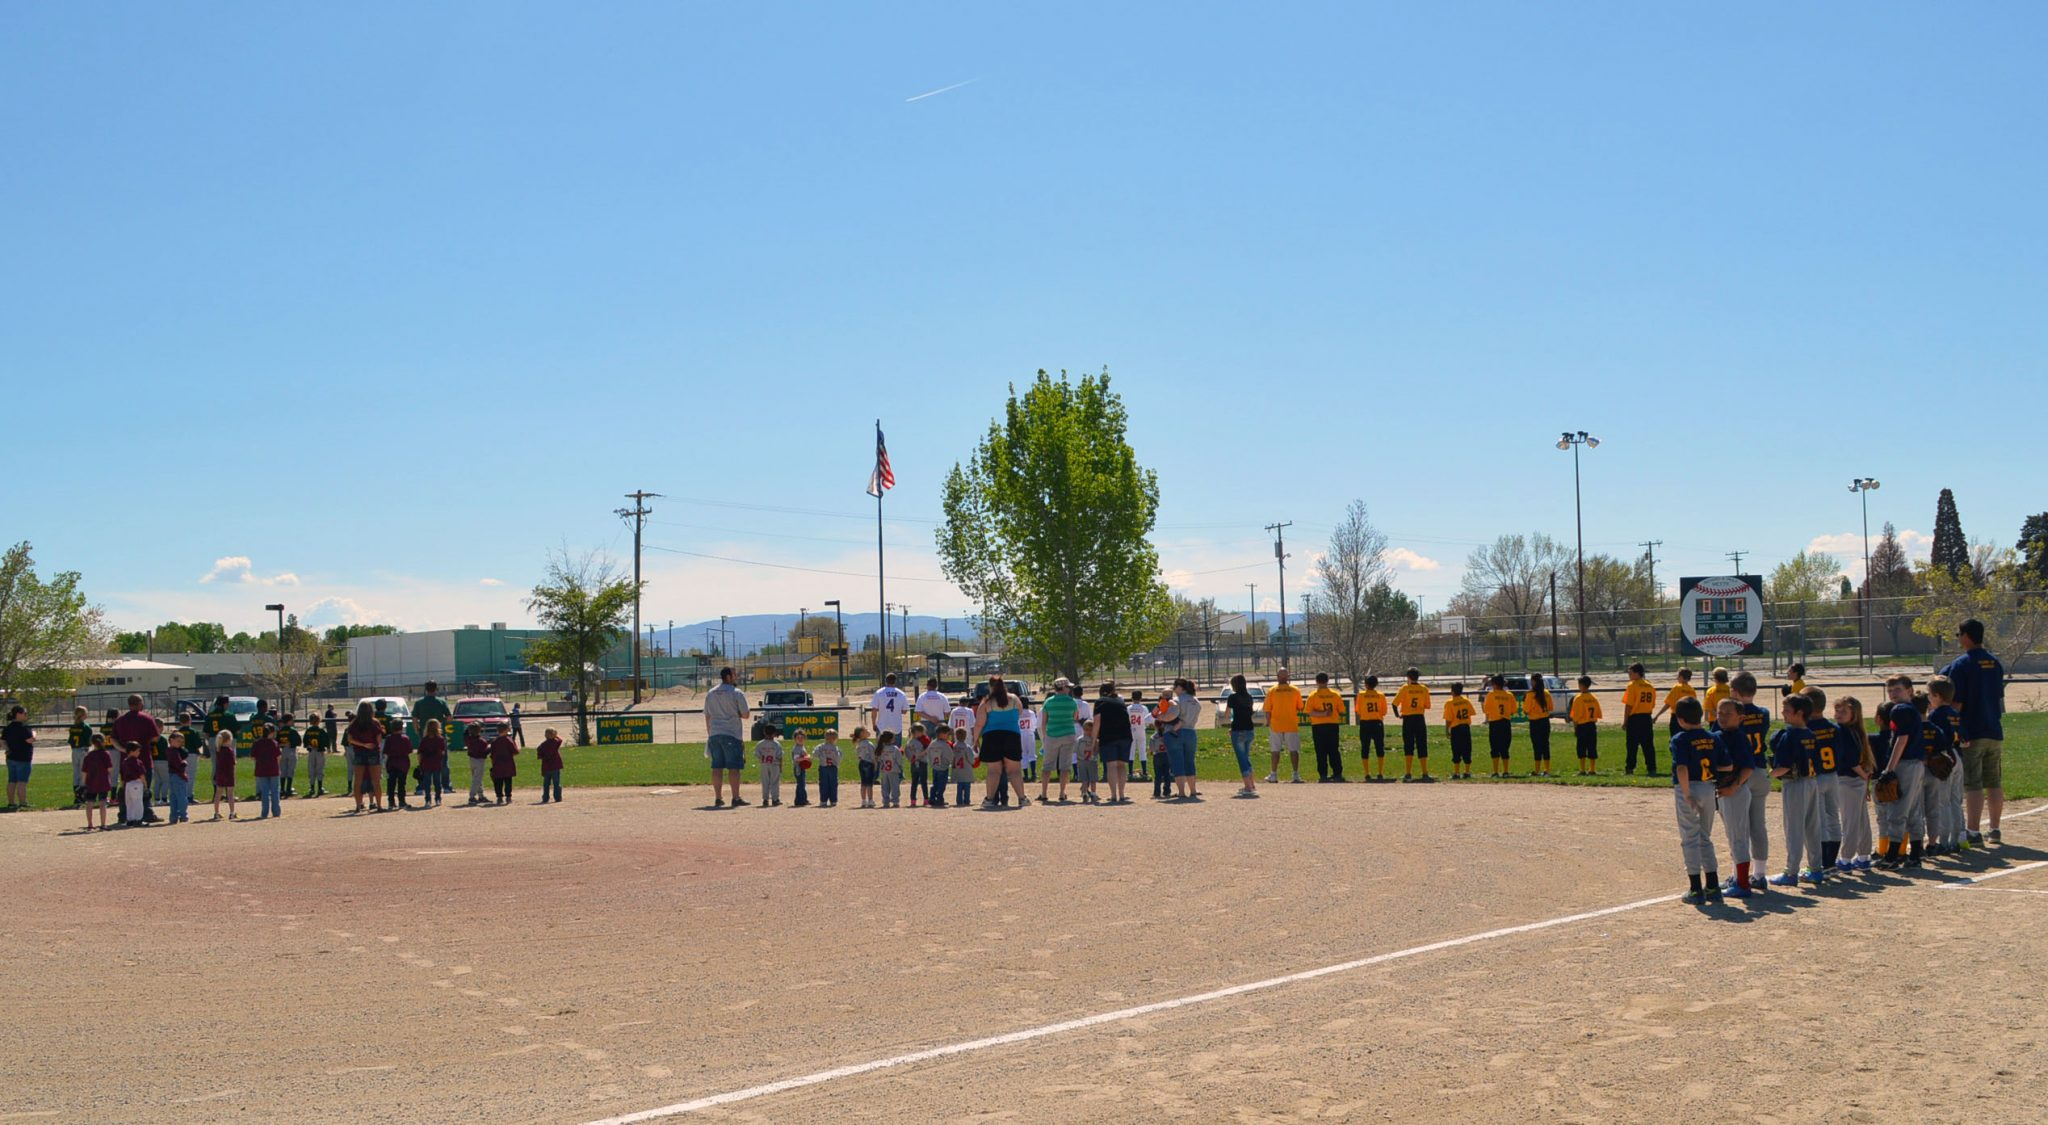 Little League season opens in Hawthorne